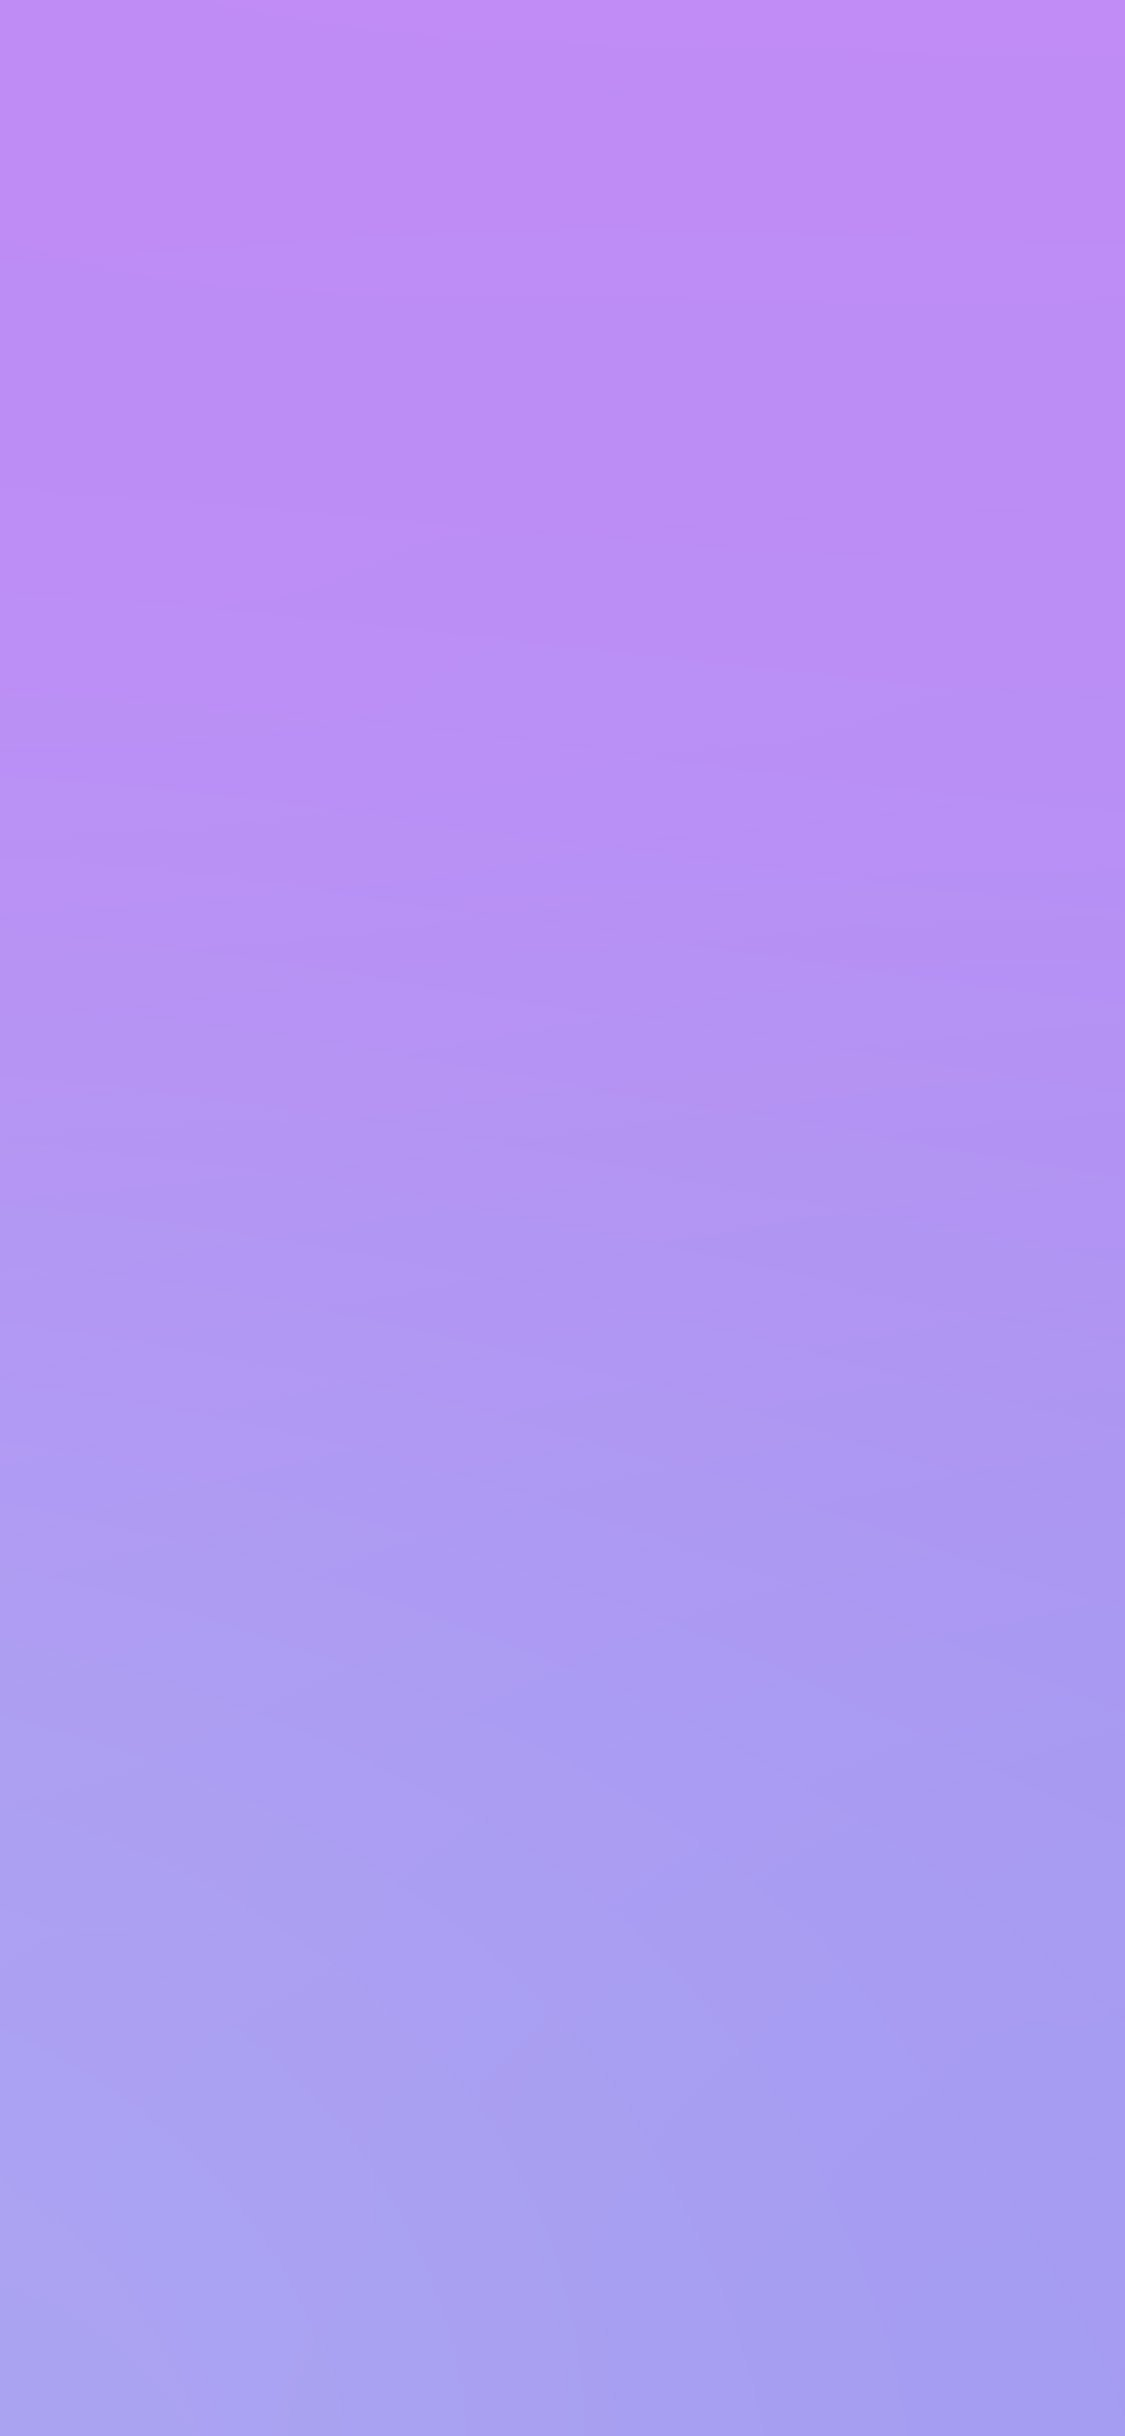 Minimalist Lavender Aesthetic Purple Wallpapers For Iphone 11